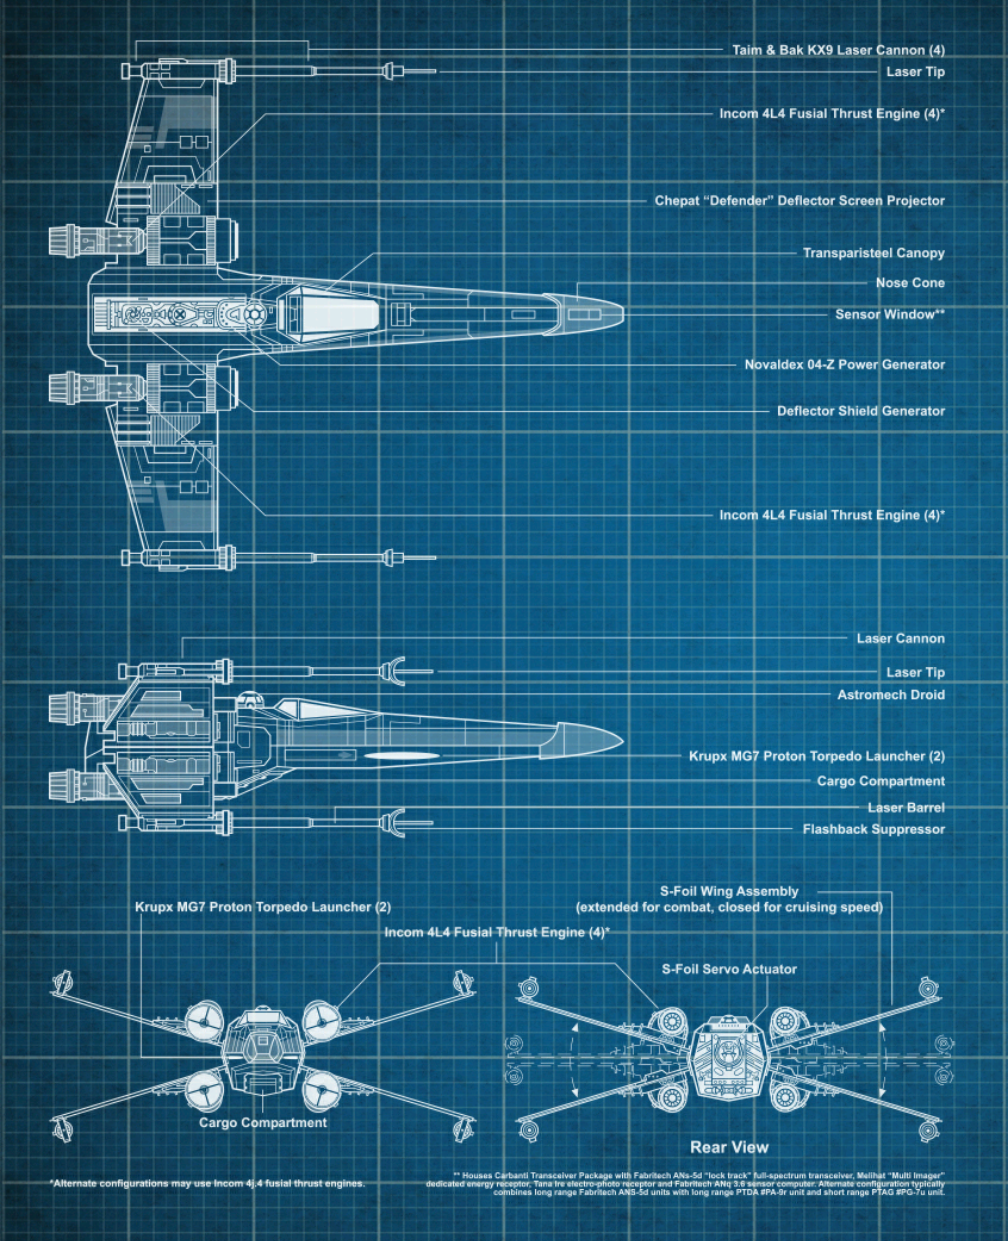 X Wing Schematics on a wing fighter schematics, slave 1 schematics, b-wing schematics, at-at schematics, y-wing schematics, tie interceptor schematics, minecraft schematics, halo warthog schematics,